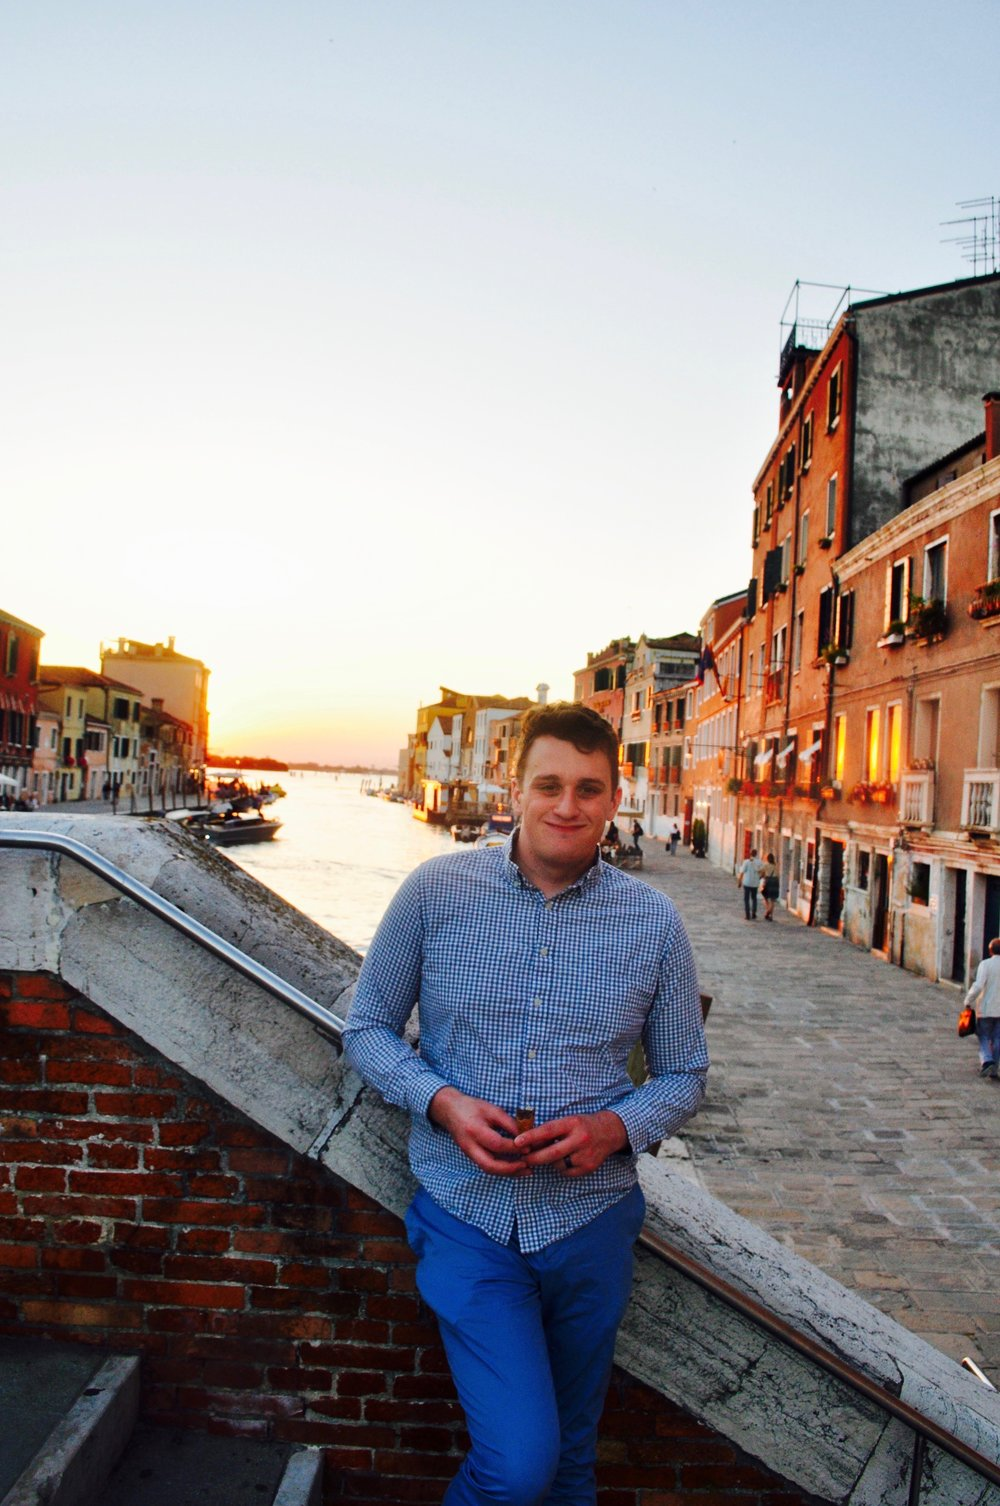 Enjoying Gelato at Sunset in Venice